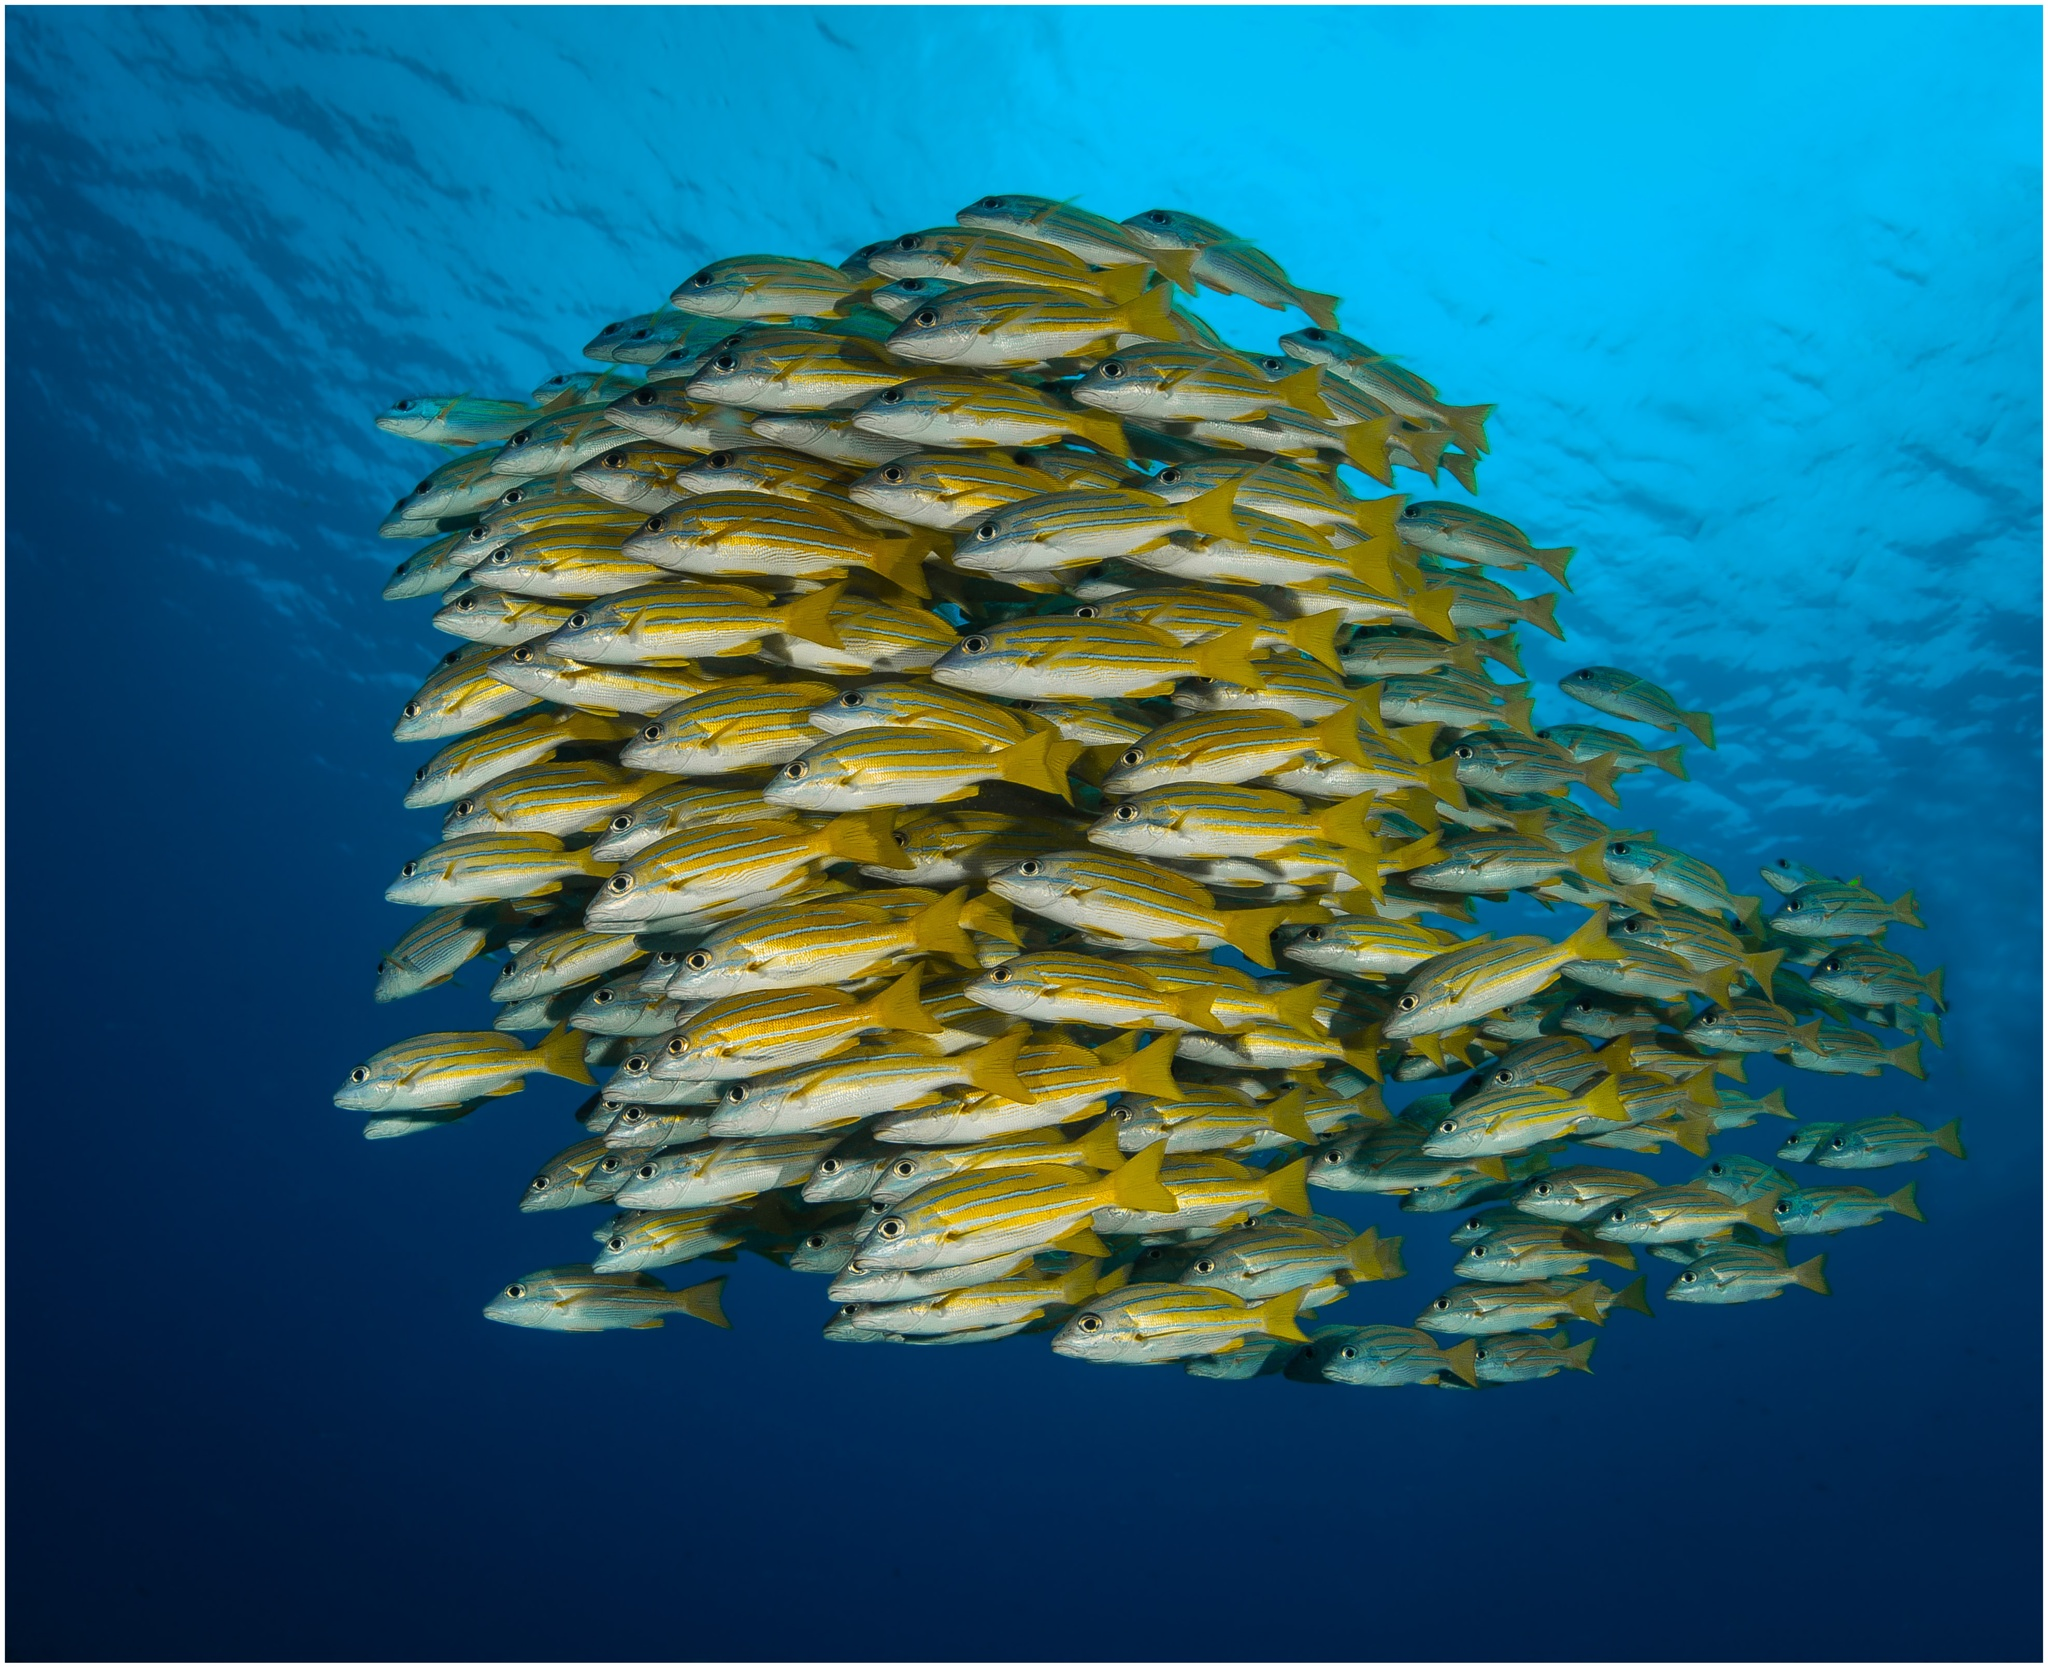 Yellow Snapper by Dr. Ortwin Khan